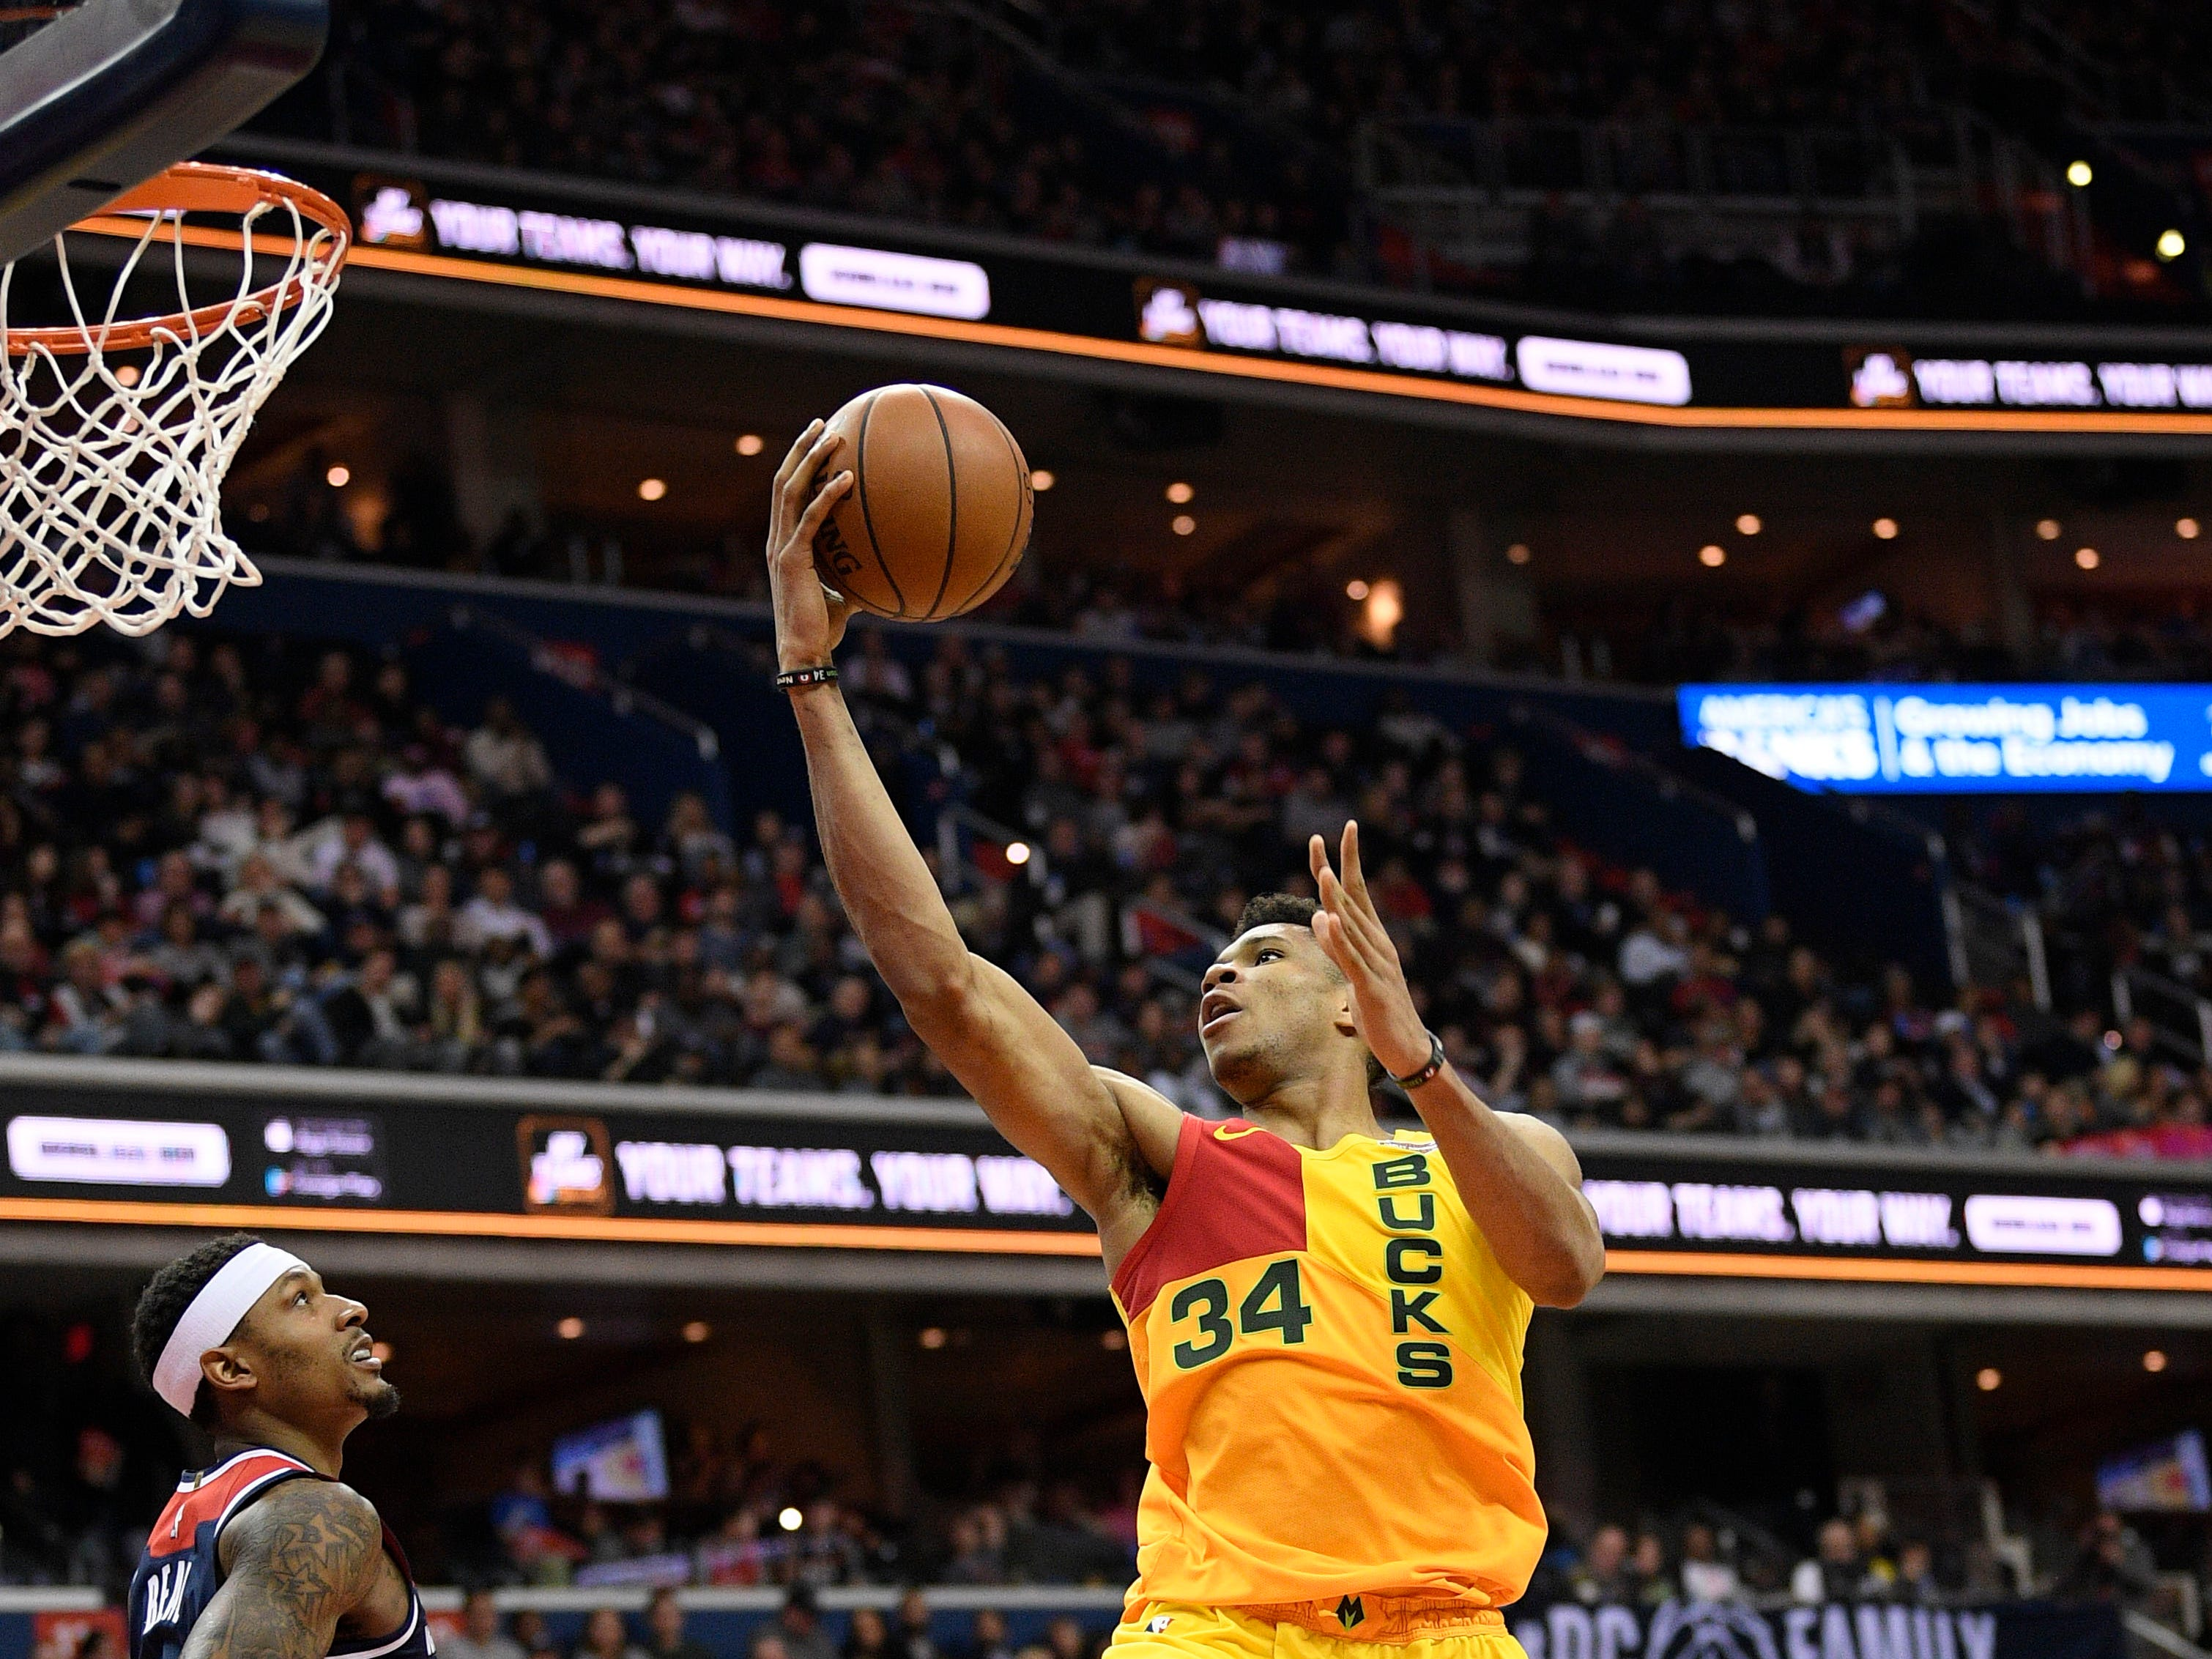 Bucks forward Giannis Antetokounmpo goes to the basket for a shot as Bradley Beal (left) of the Wizards basically stays out of his way during the second half Saturday night.